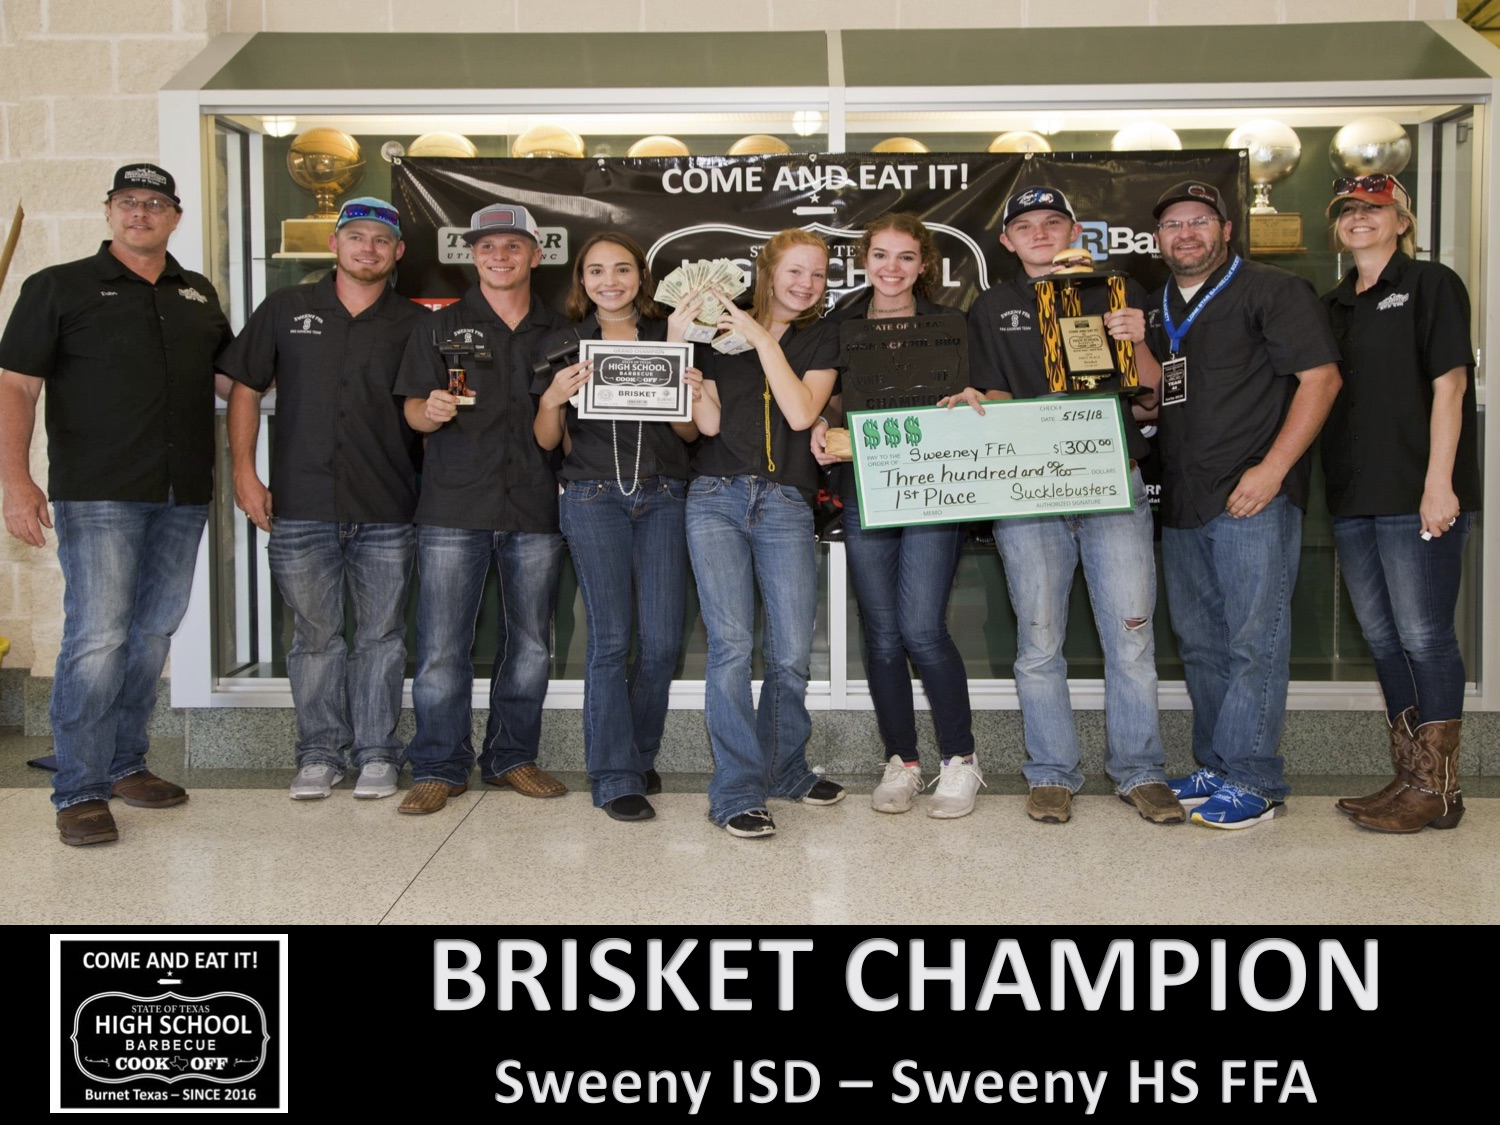 2018 Texas HS Brisket winner